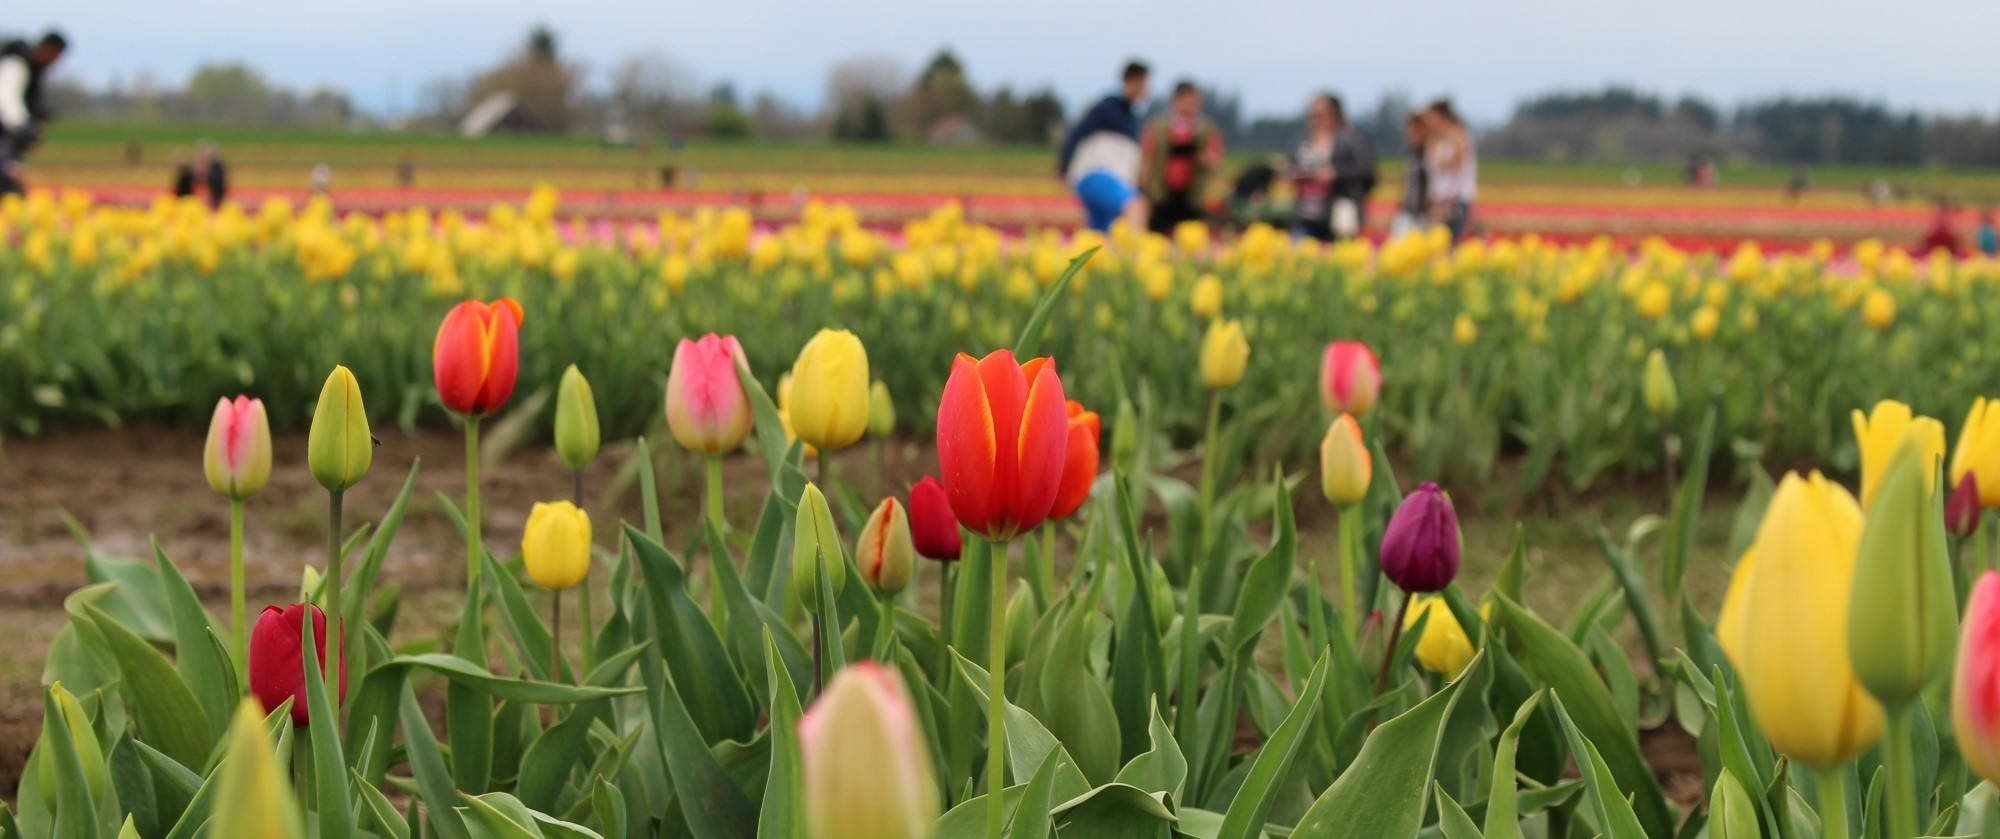 Field of Tulips and Flowers